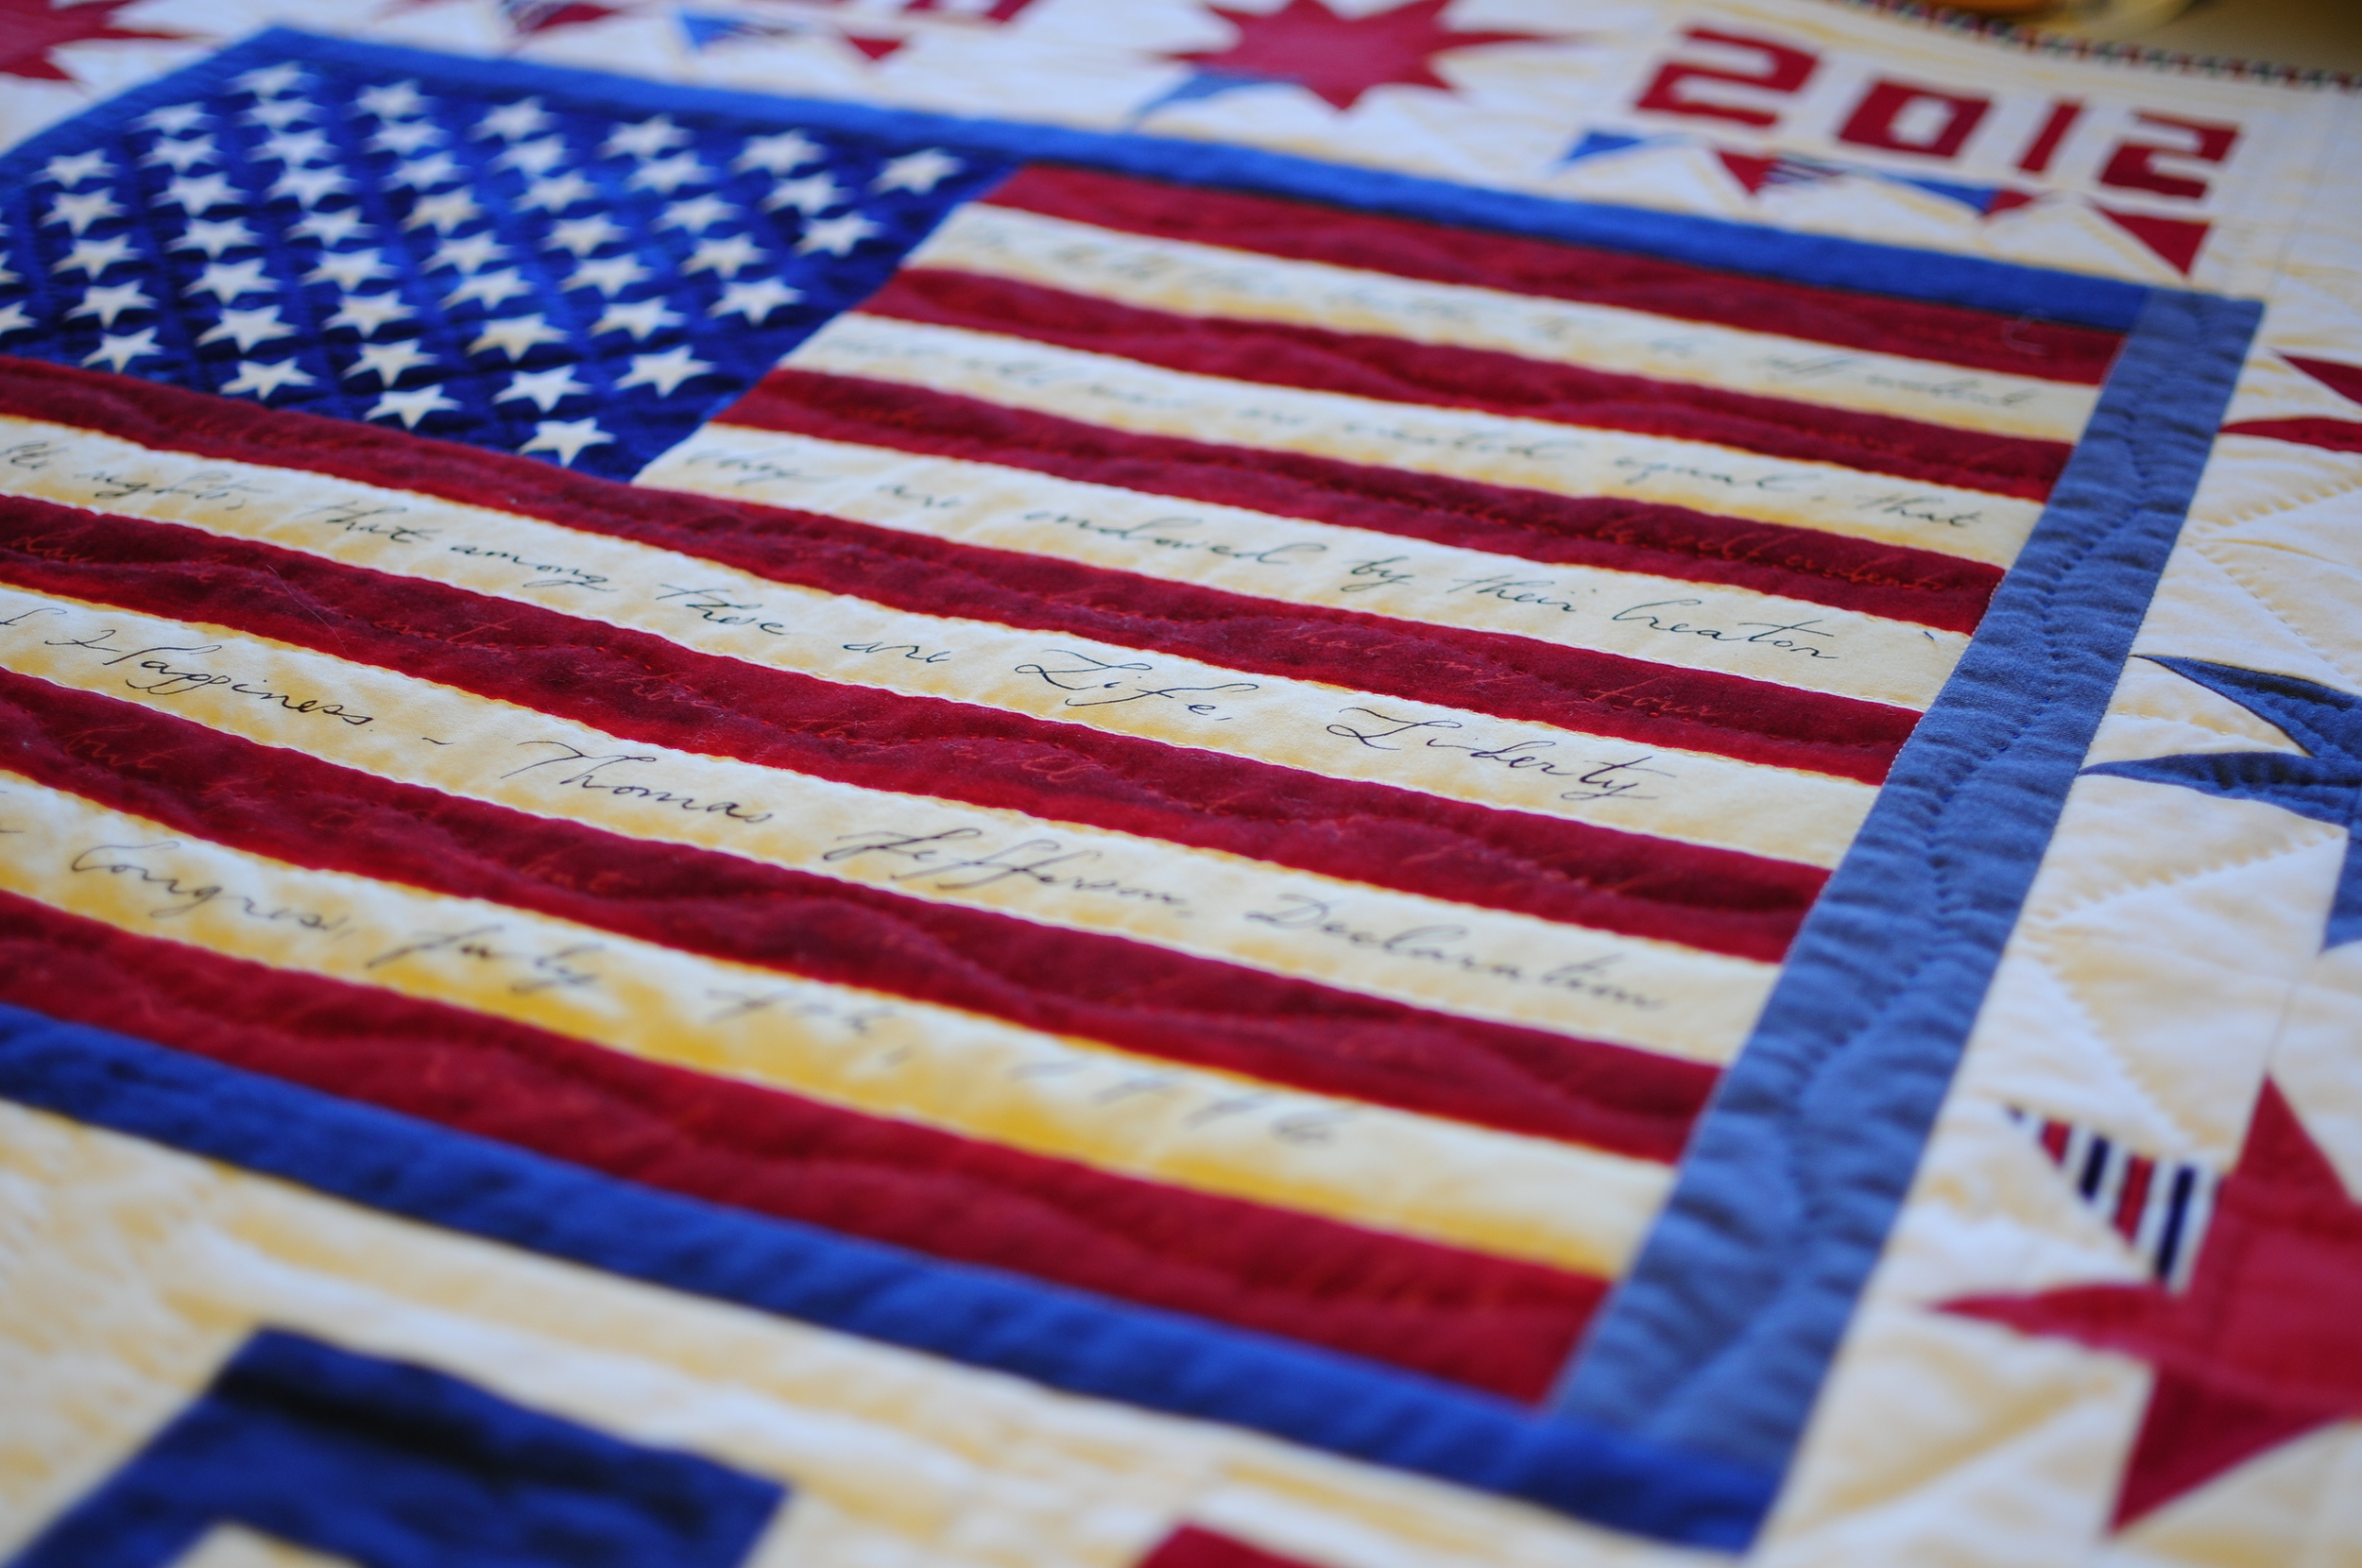 Obama Quilt on Inauguration Day (14)